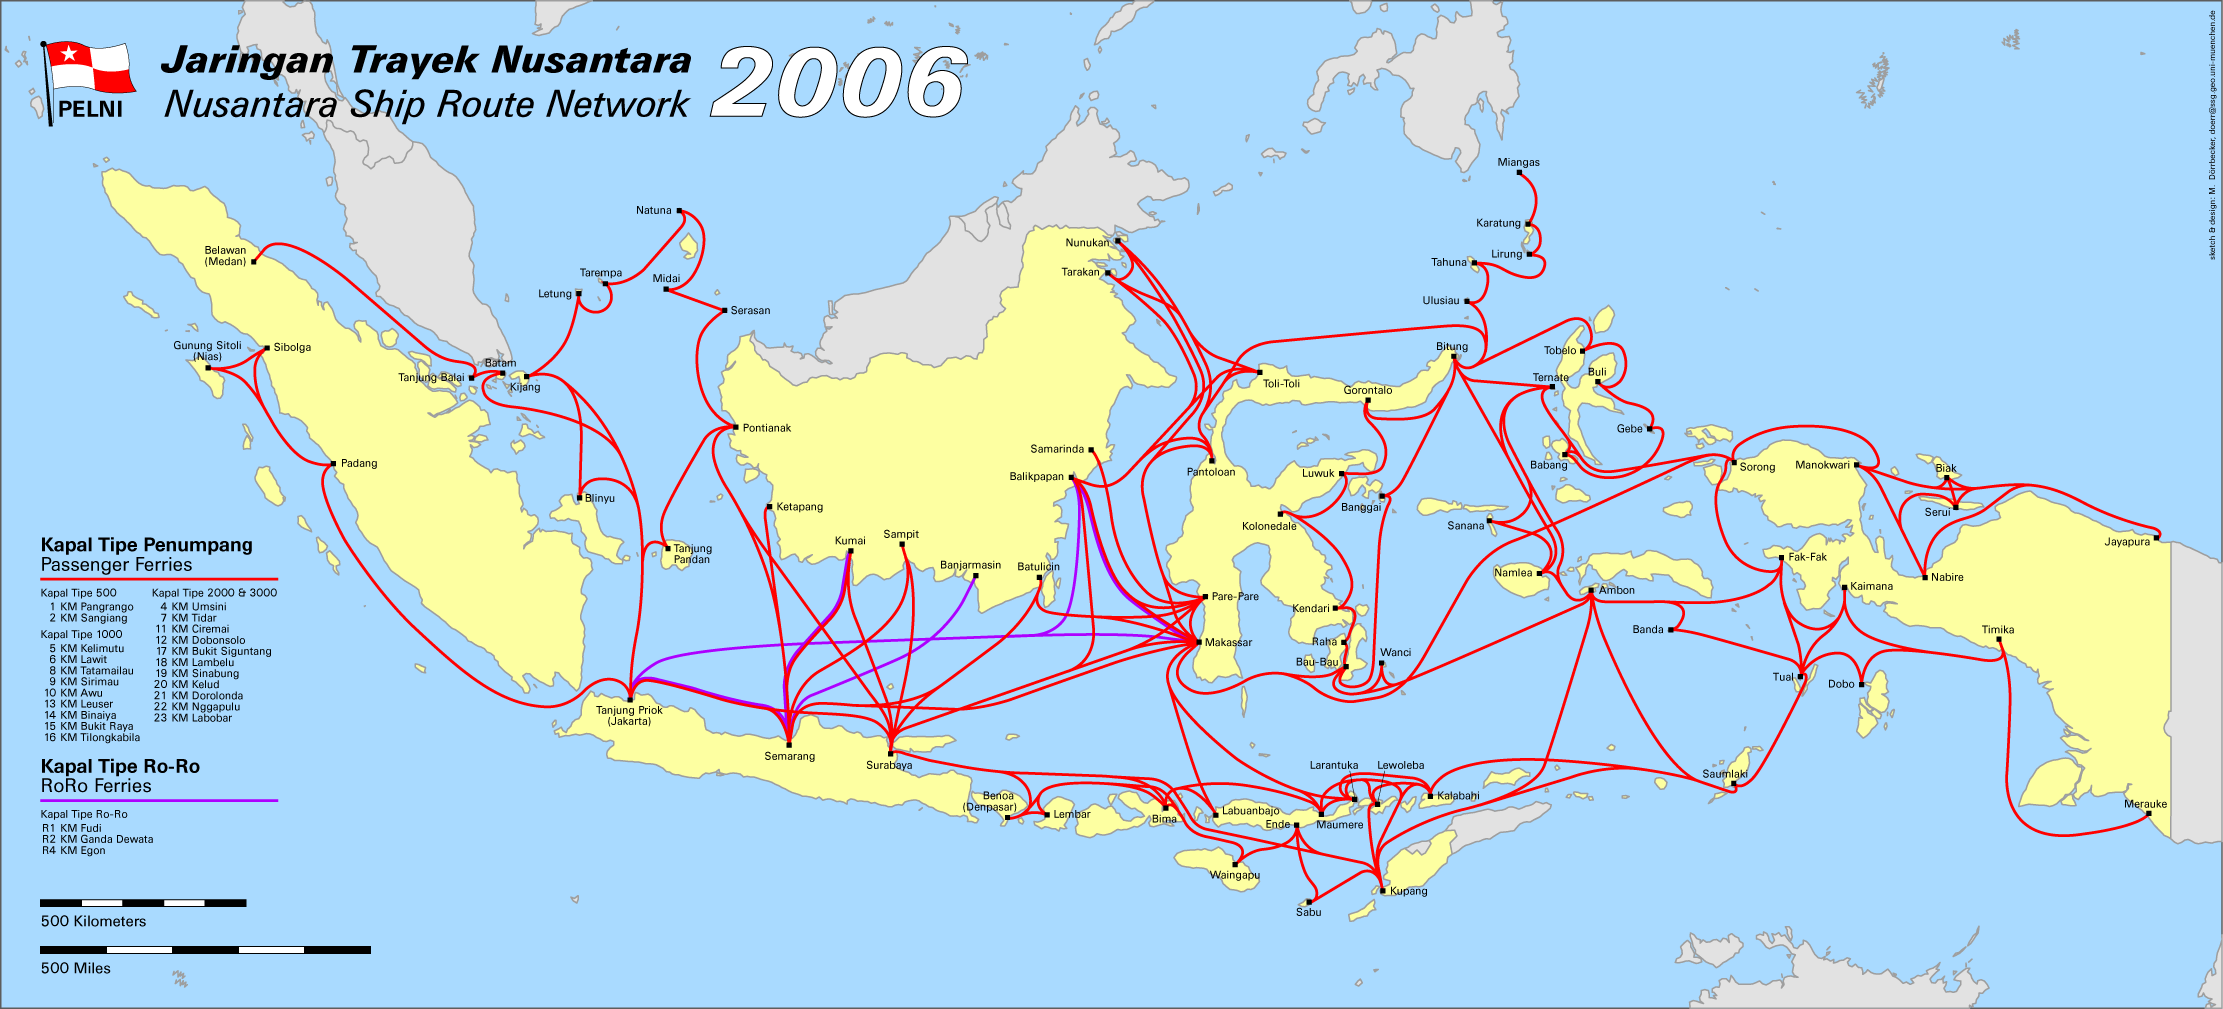 City maps stadskartor och turistkartor australia cambodia etc indonesia trainferry map gumiabroncs Choice Image